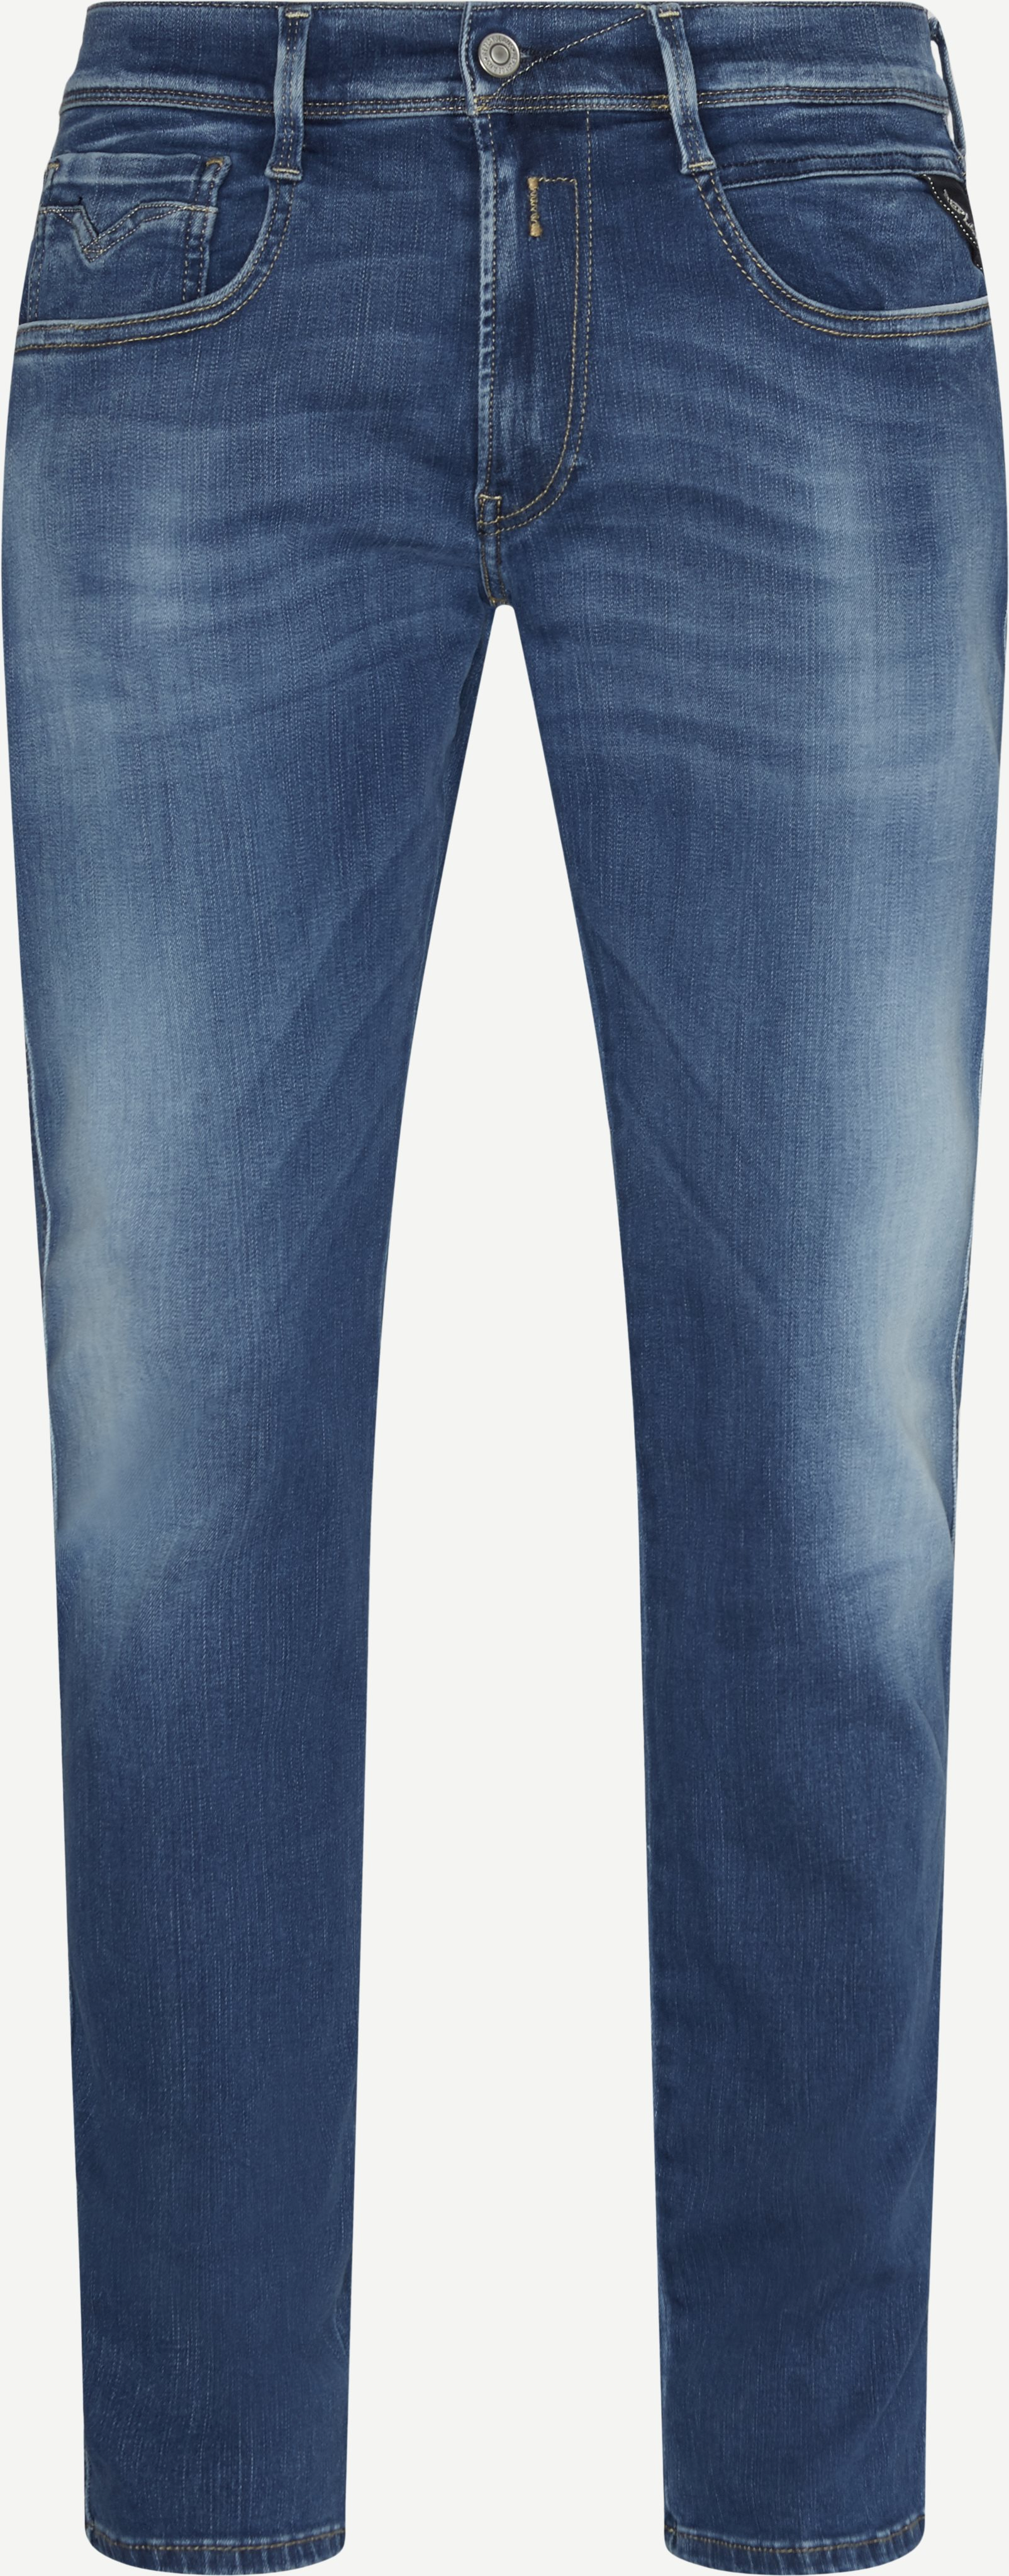 Anbass Hyperflex Jeans - Jeans - Slim fit - Denim